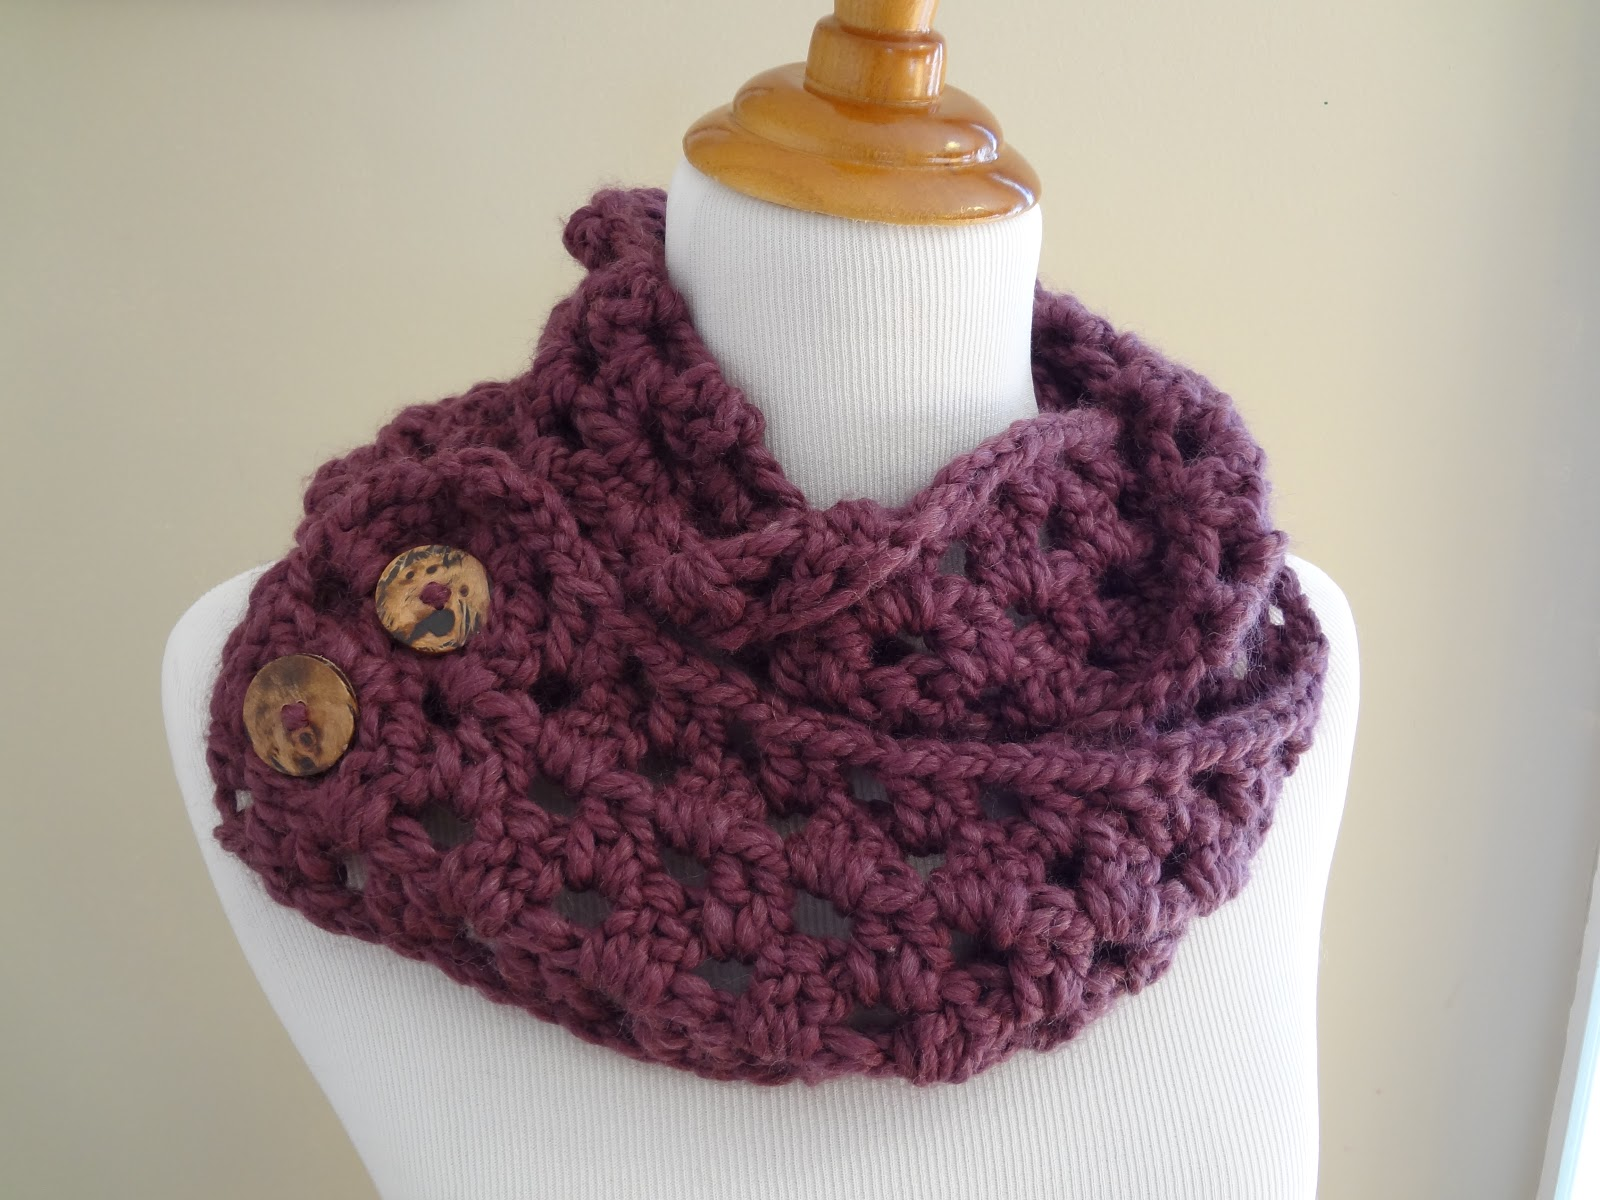 Crochet Scarf Pattern With Button : Fiber Flux: Free Crochet Pattern...Fiona Button Scarf!